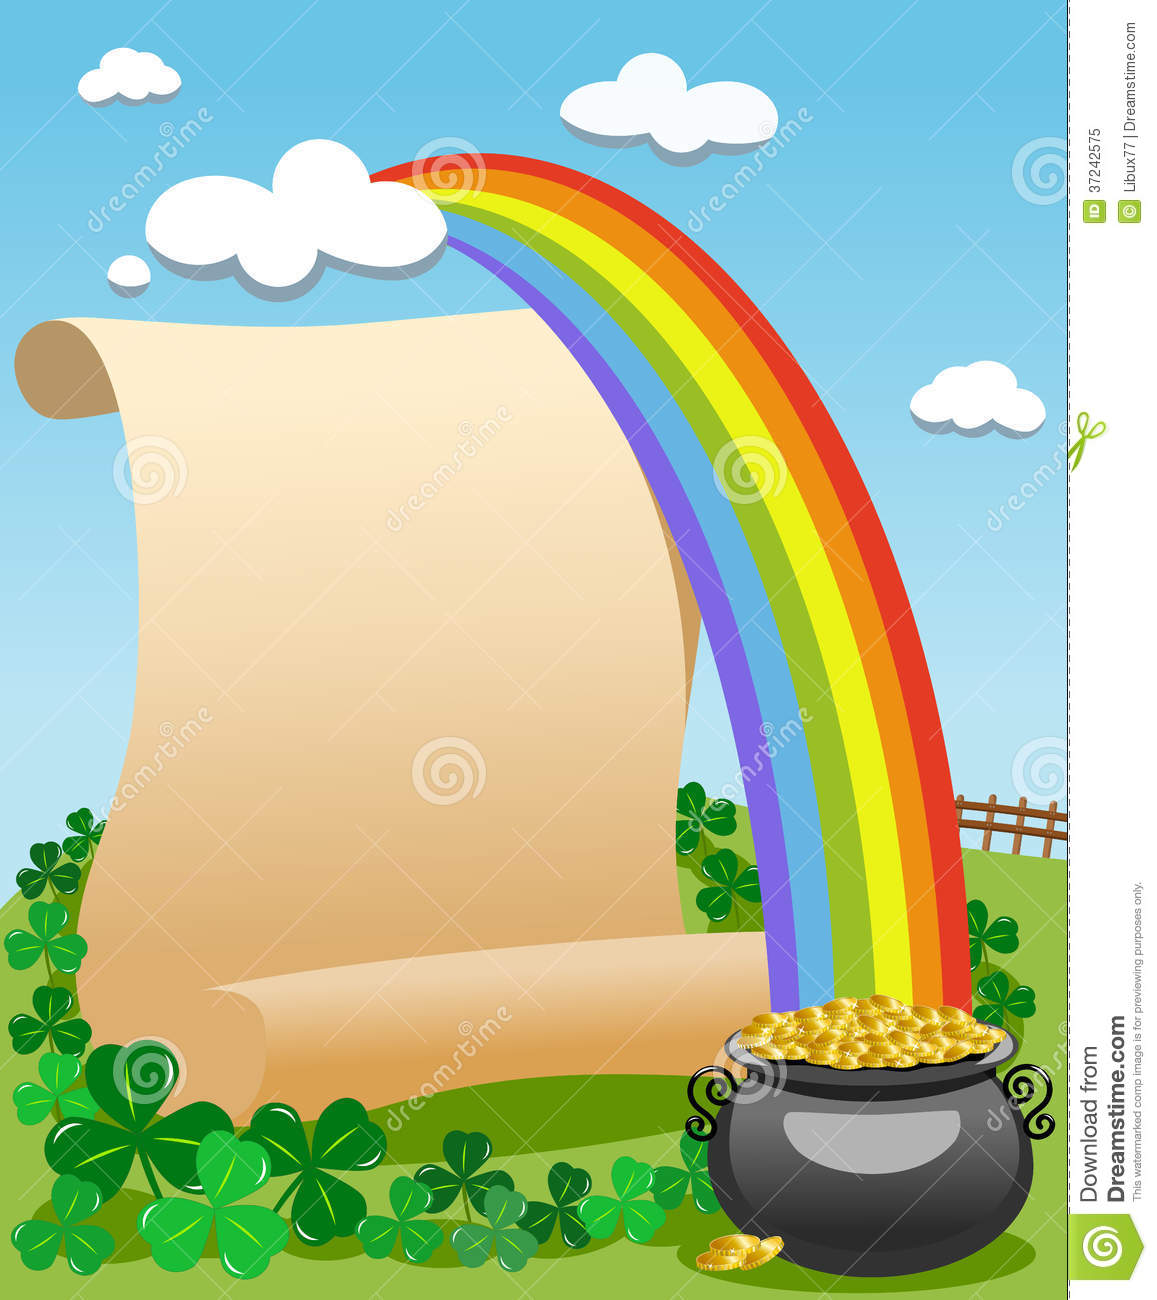 Patrick S Day Old Parchment Rainbow Royalty Free Stock Photo - Image ...